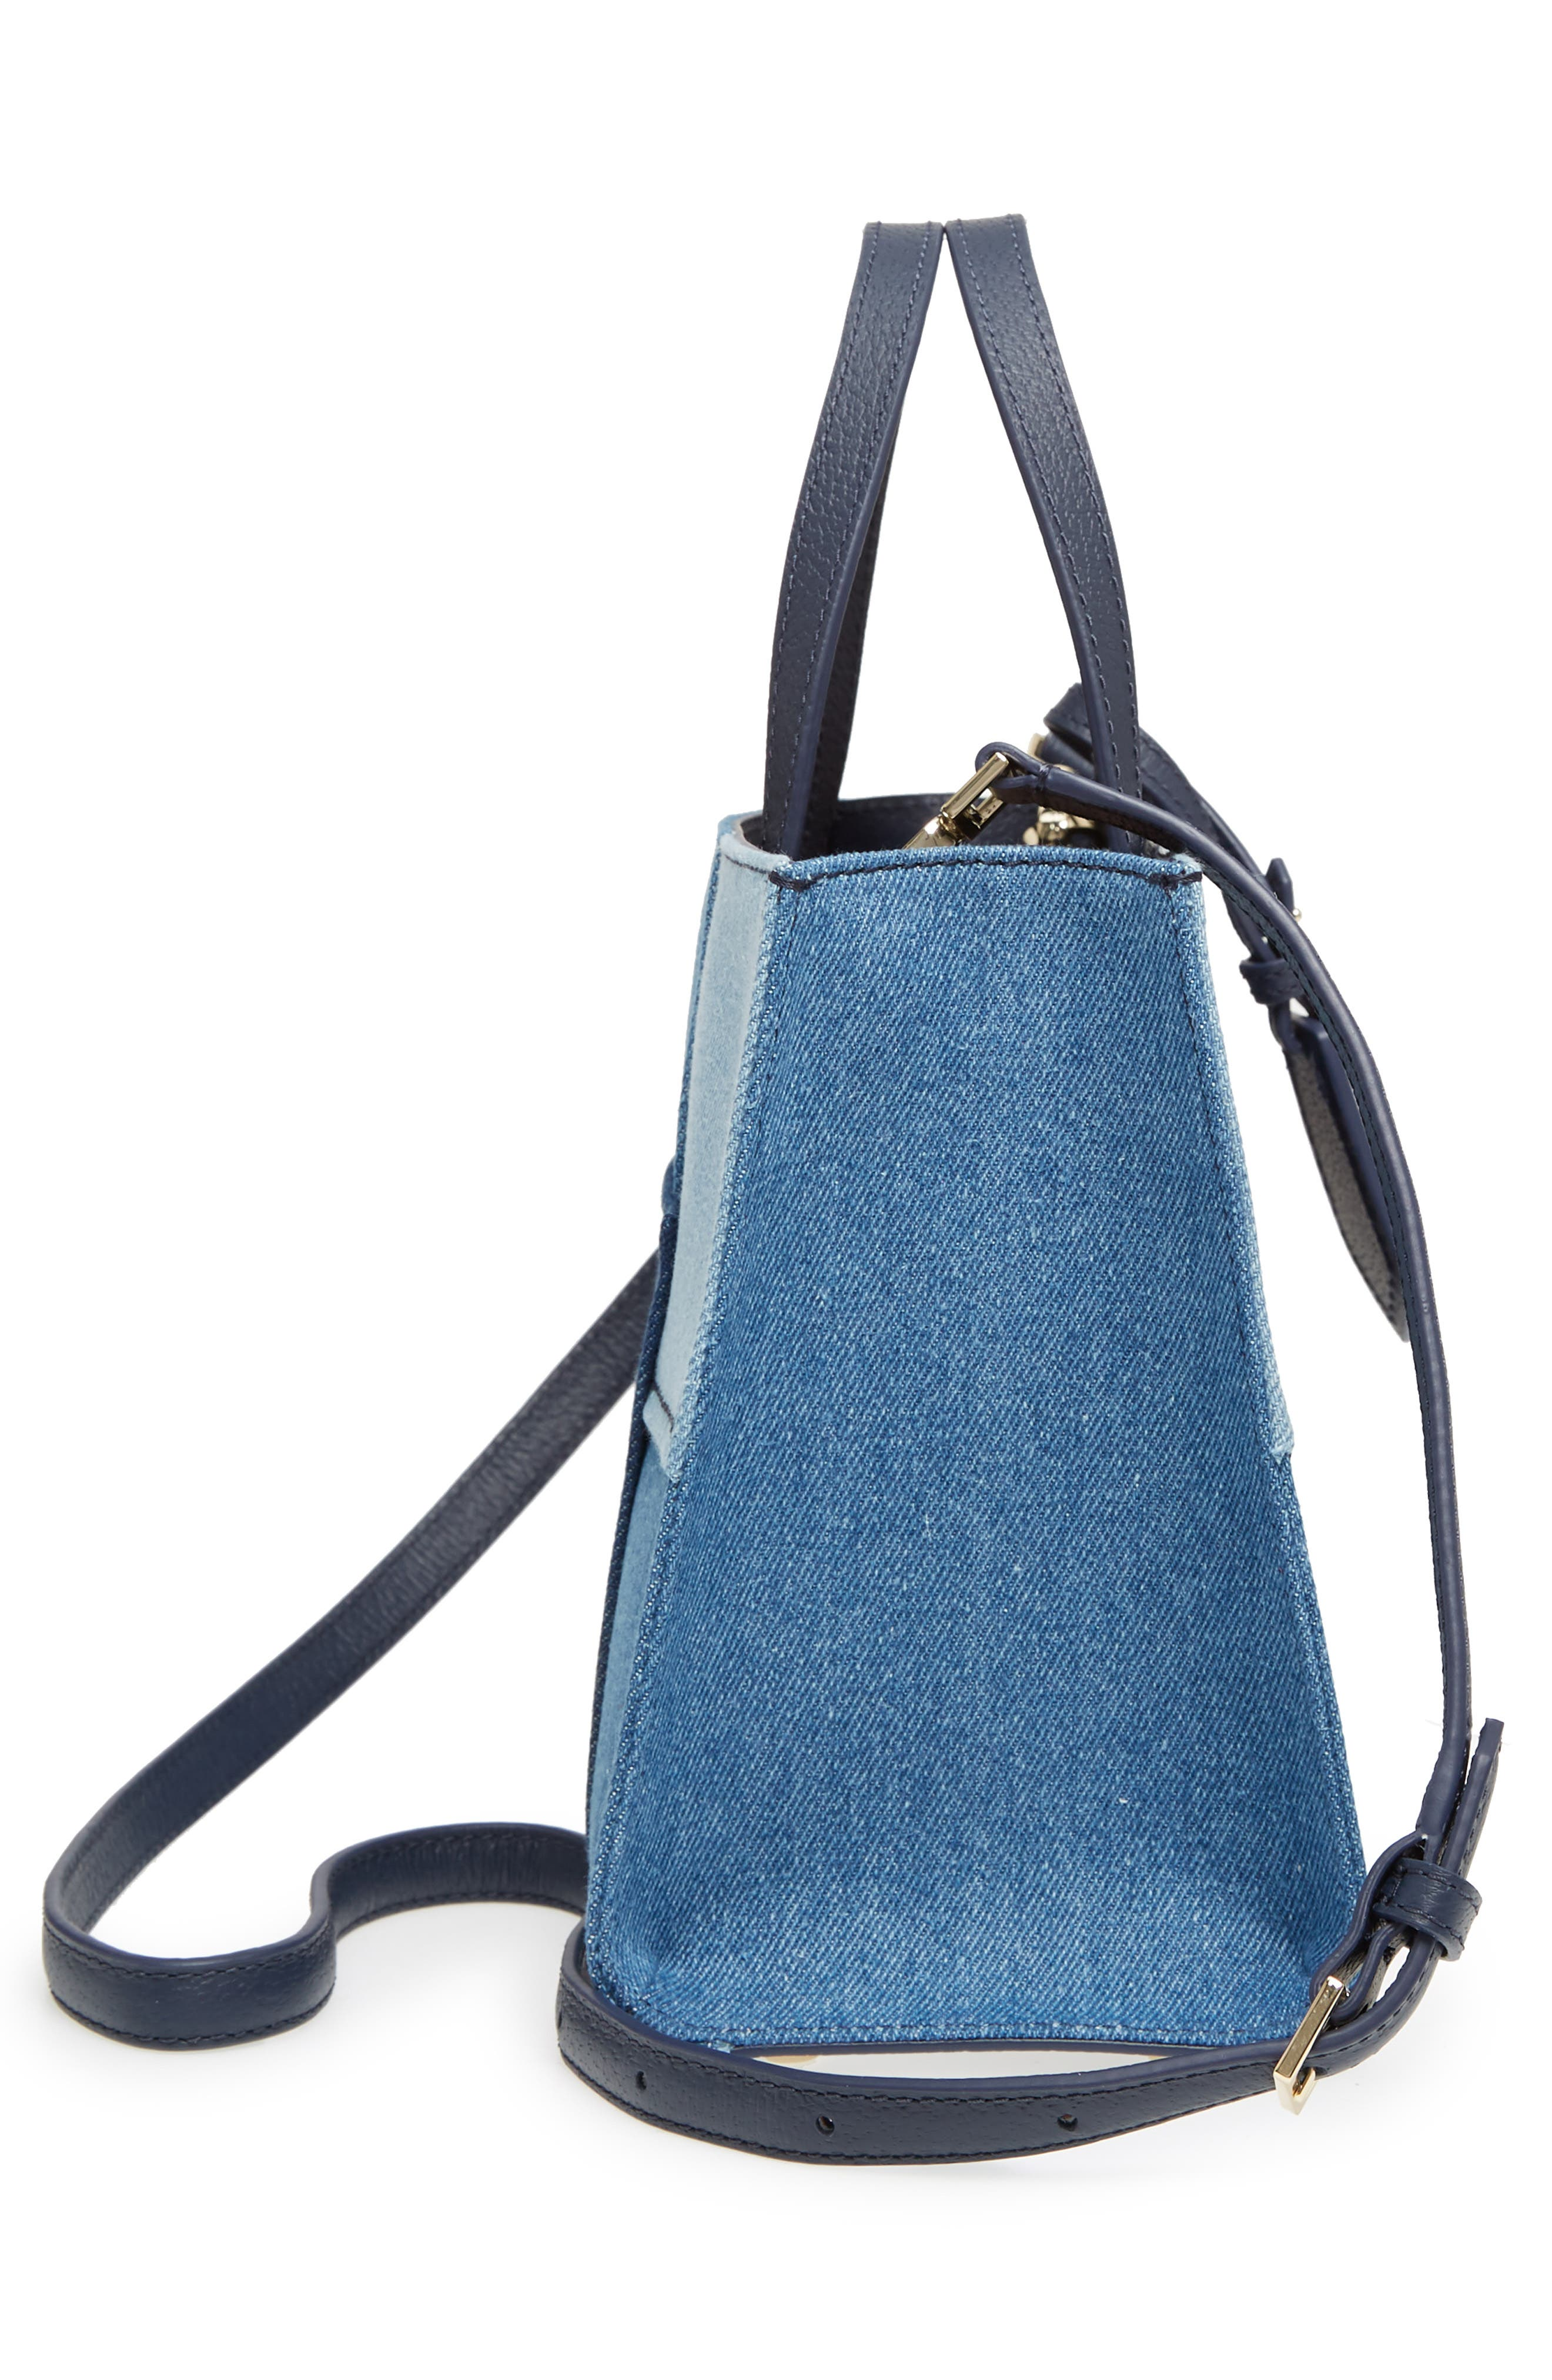 thompson street - sam patchwork denim handbag,                             Alternate thumbnail 5, color,                             400